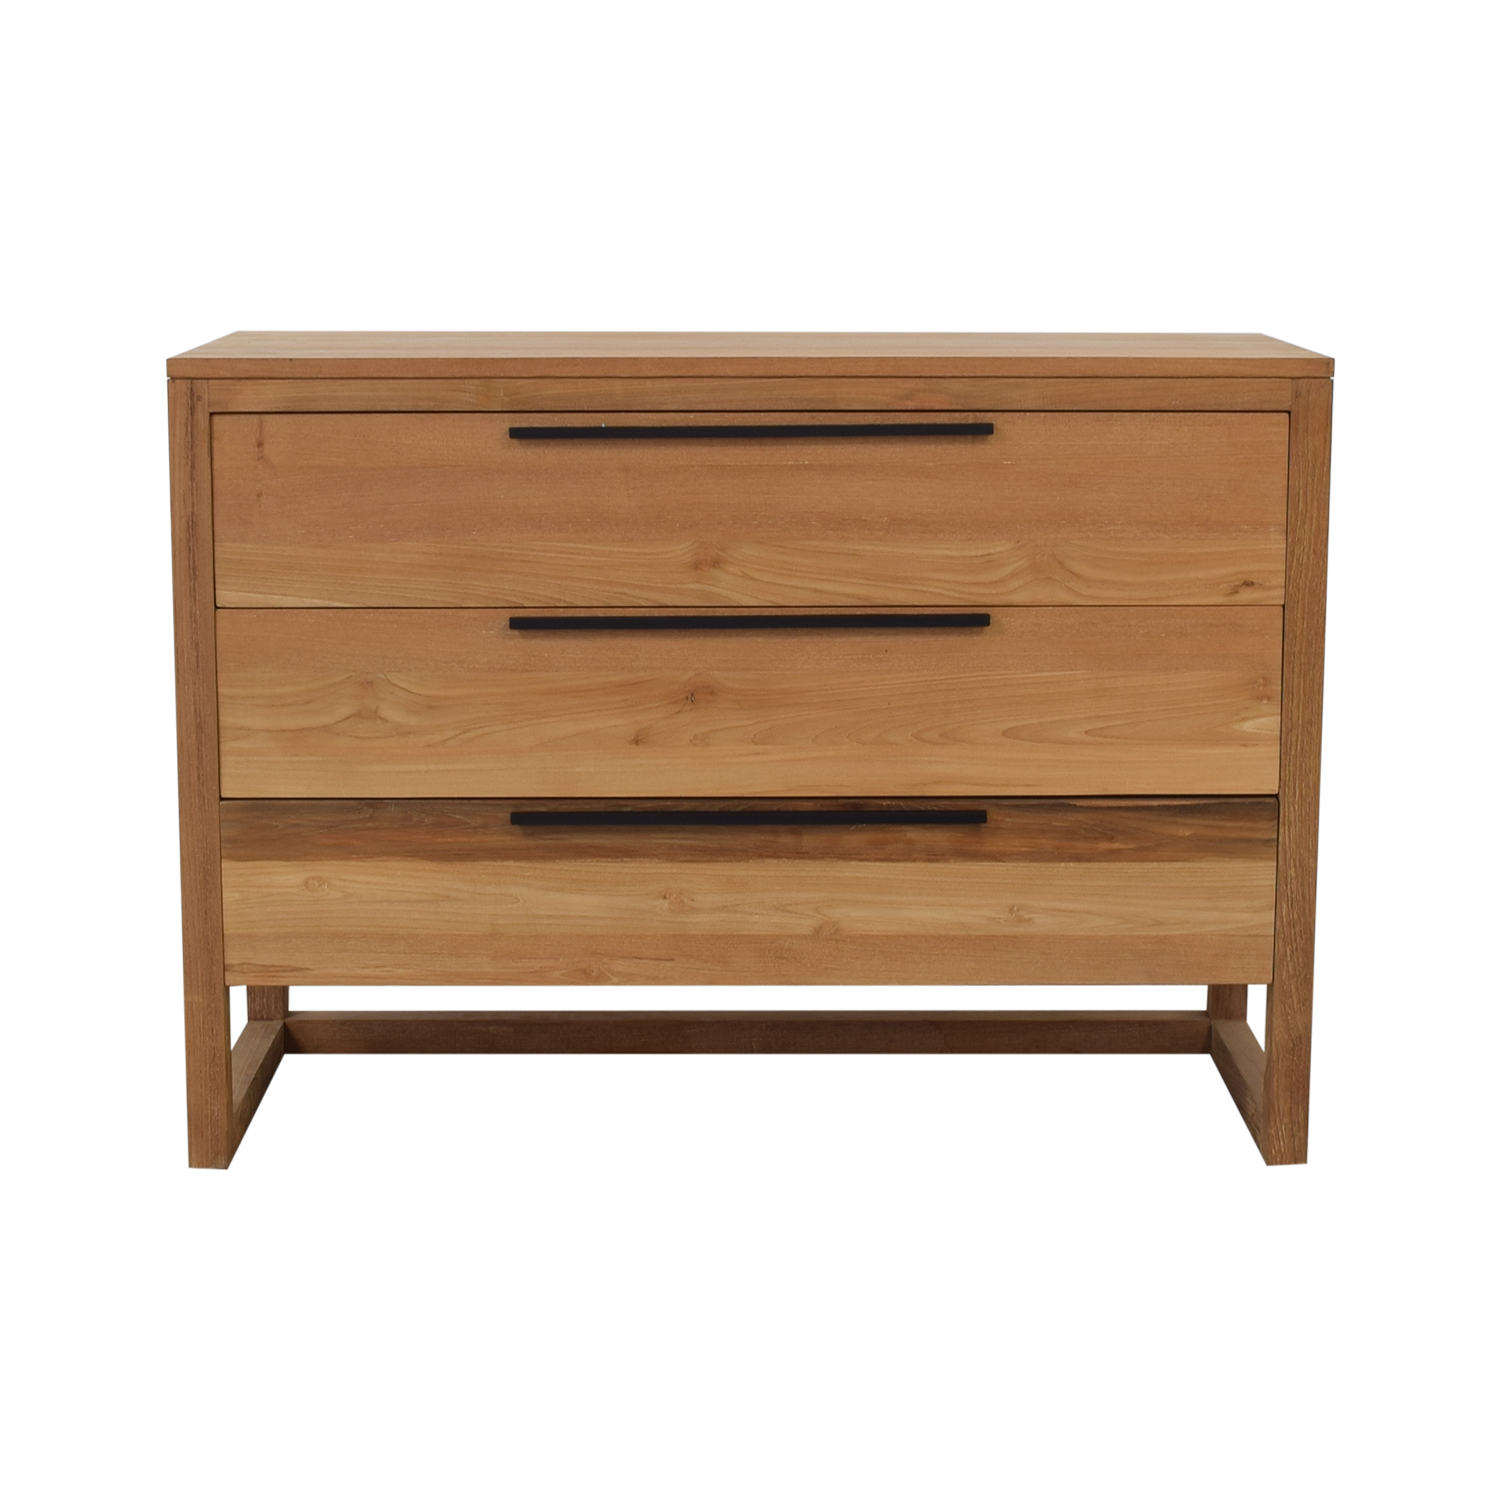 Crate & Barrel Crate & Barrel Linea II Natural Three-Drawer Chest on sale